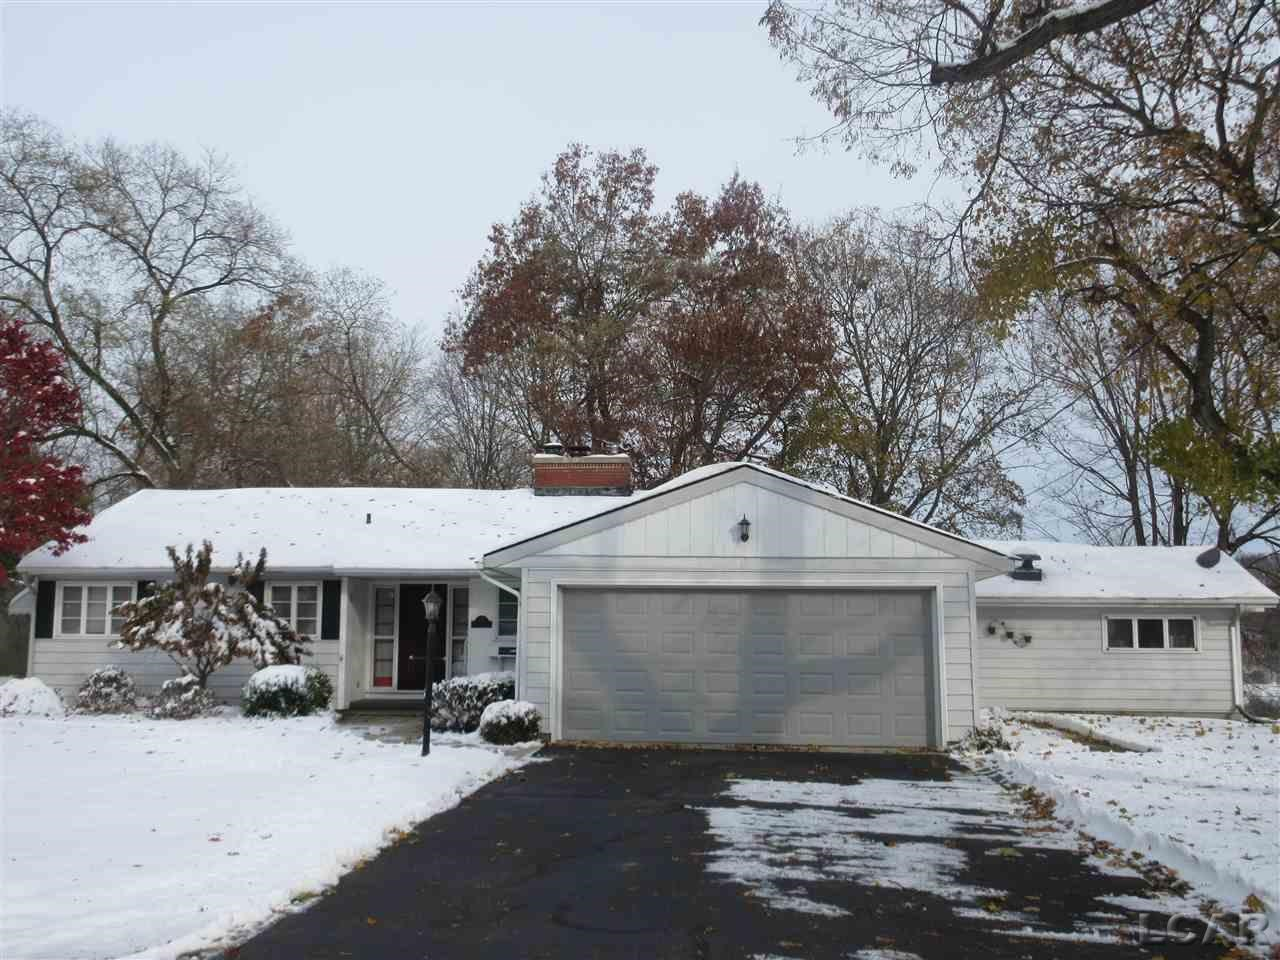 400 OUTER COURT, Tecumseh (46043)